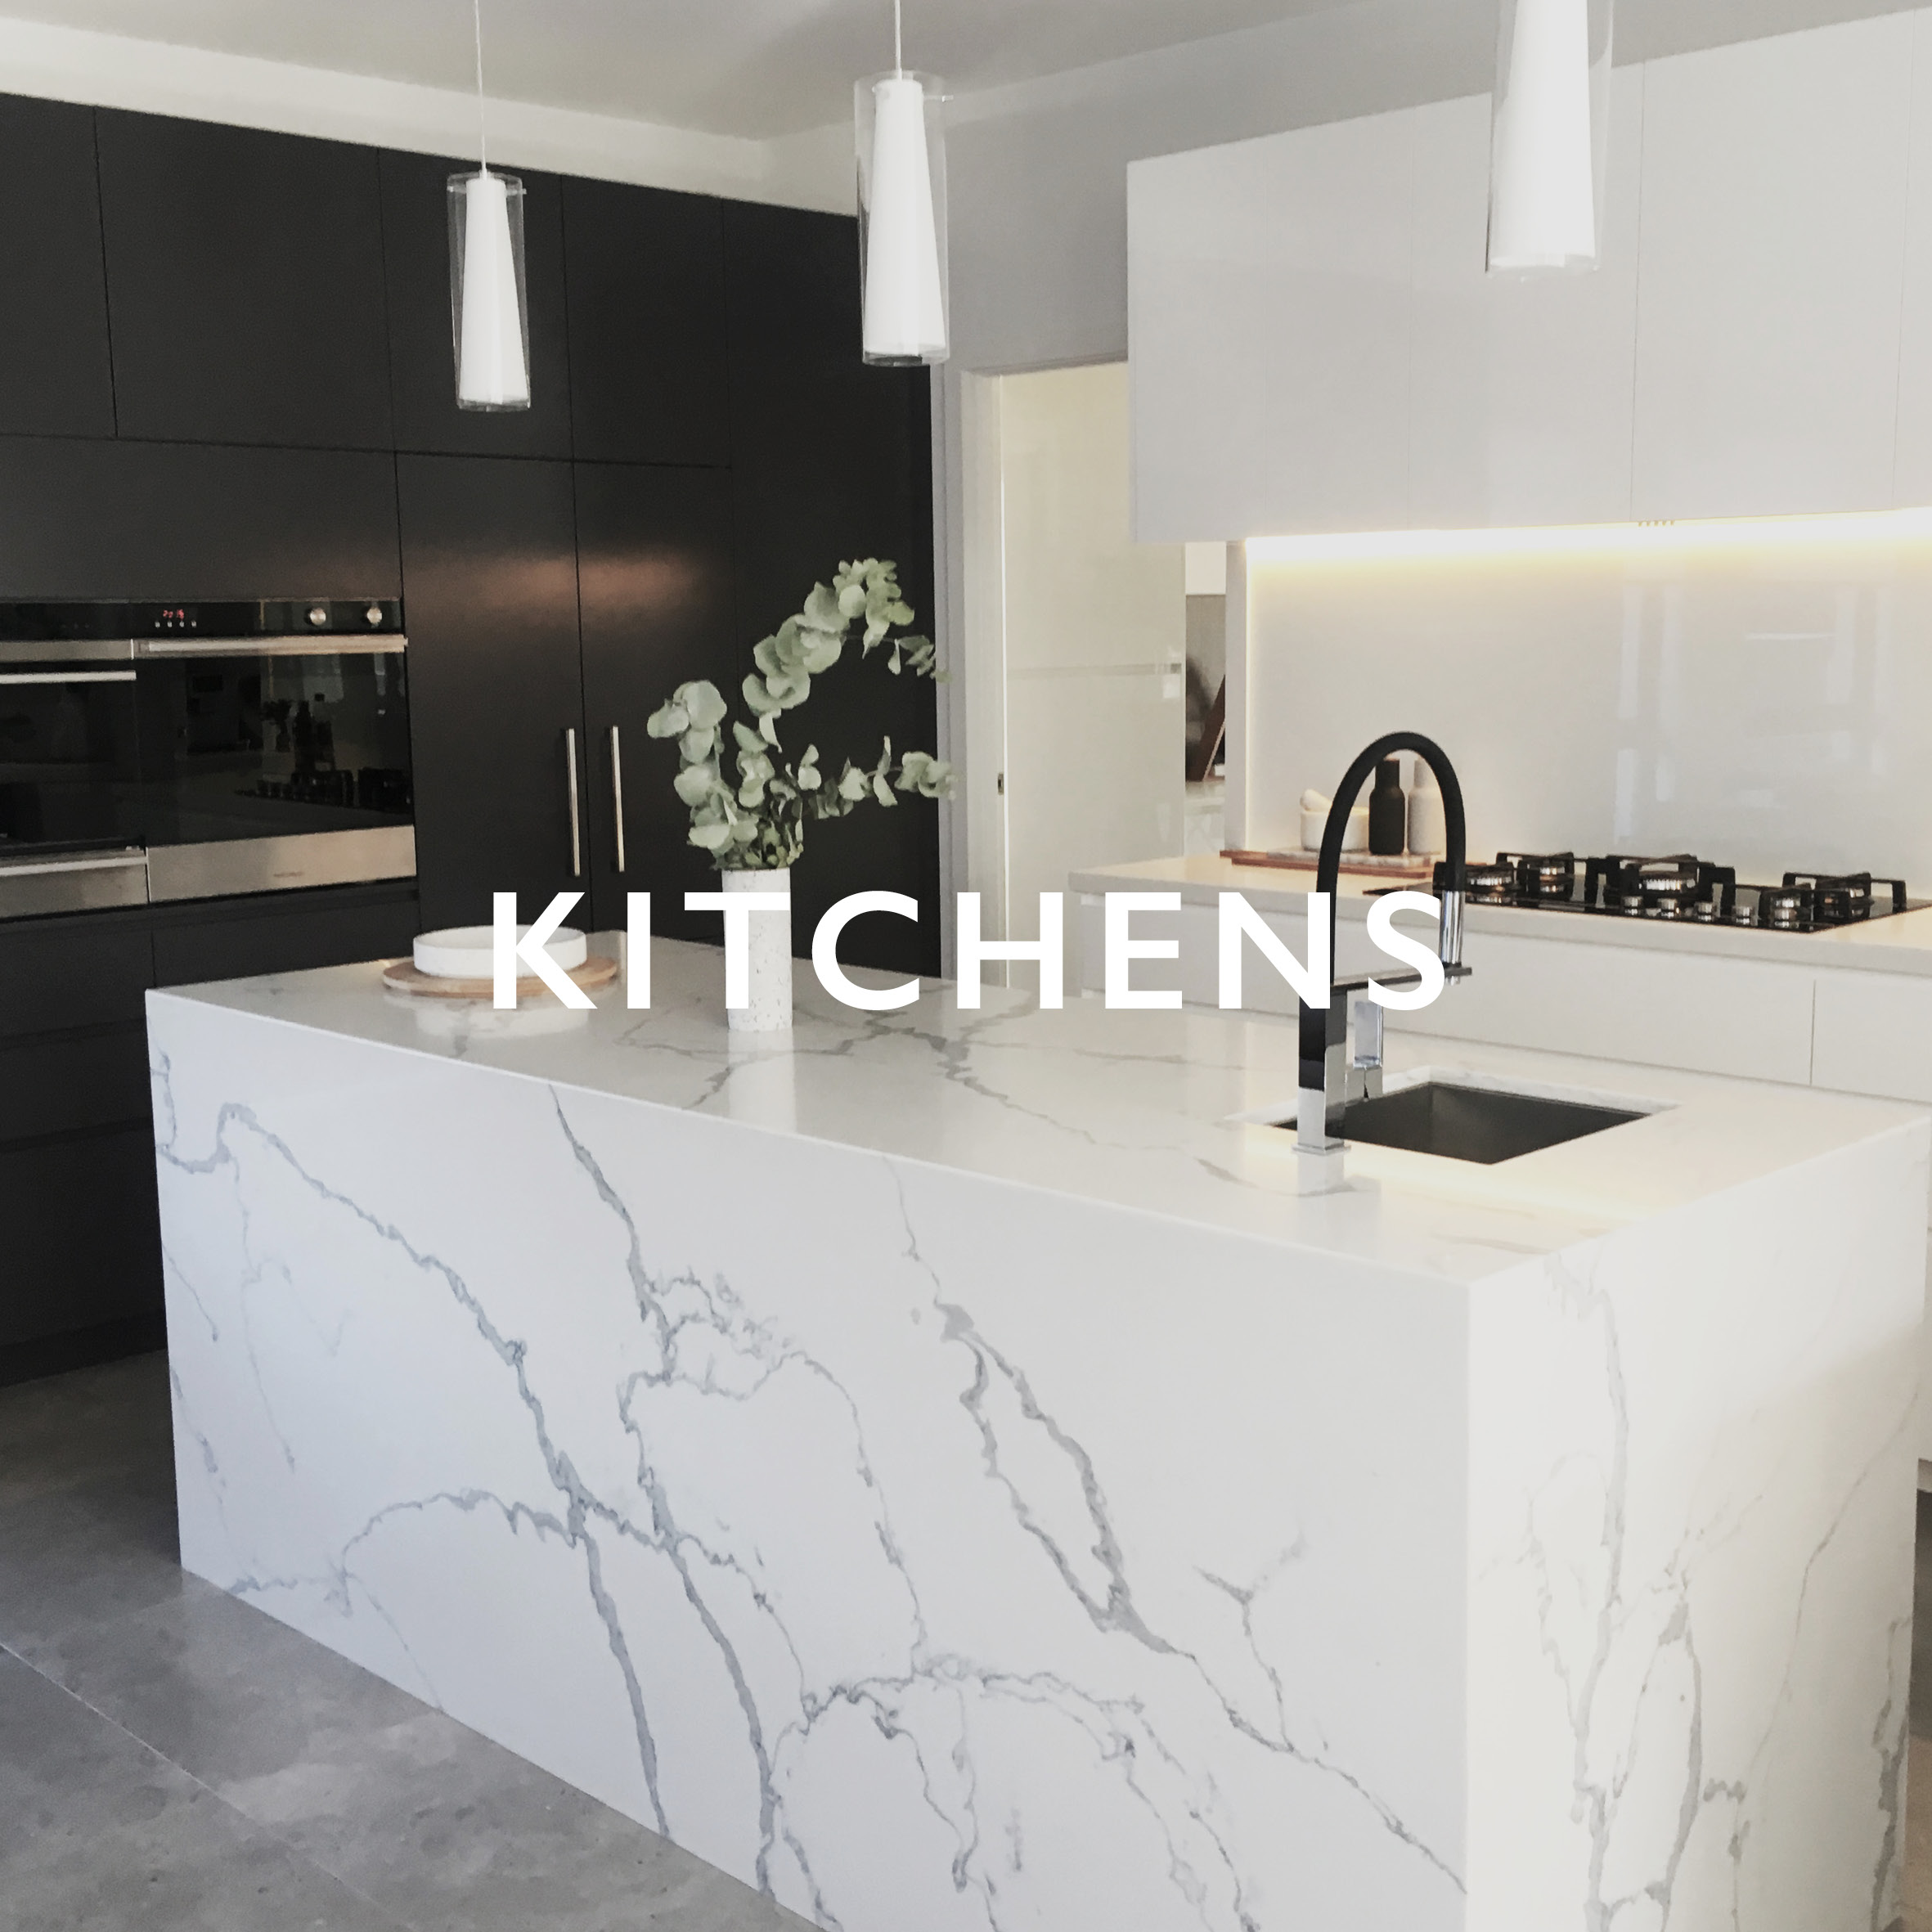 We Specialise In Both Commercial And Residential Interior And Building  Design And Weu0027re Capable Of Managing Your Build From Start To Finish.